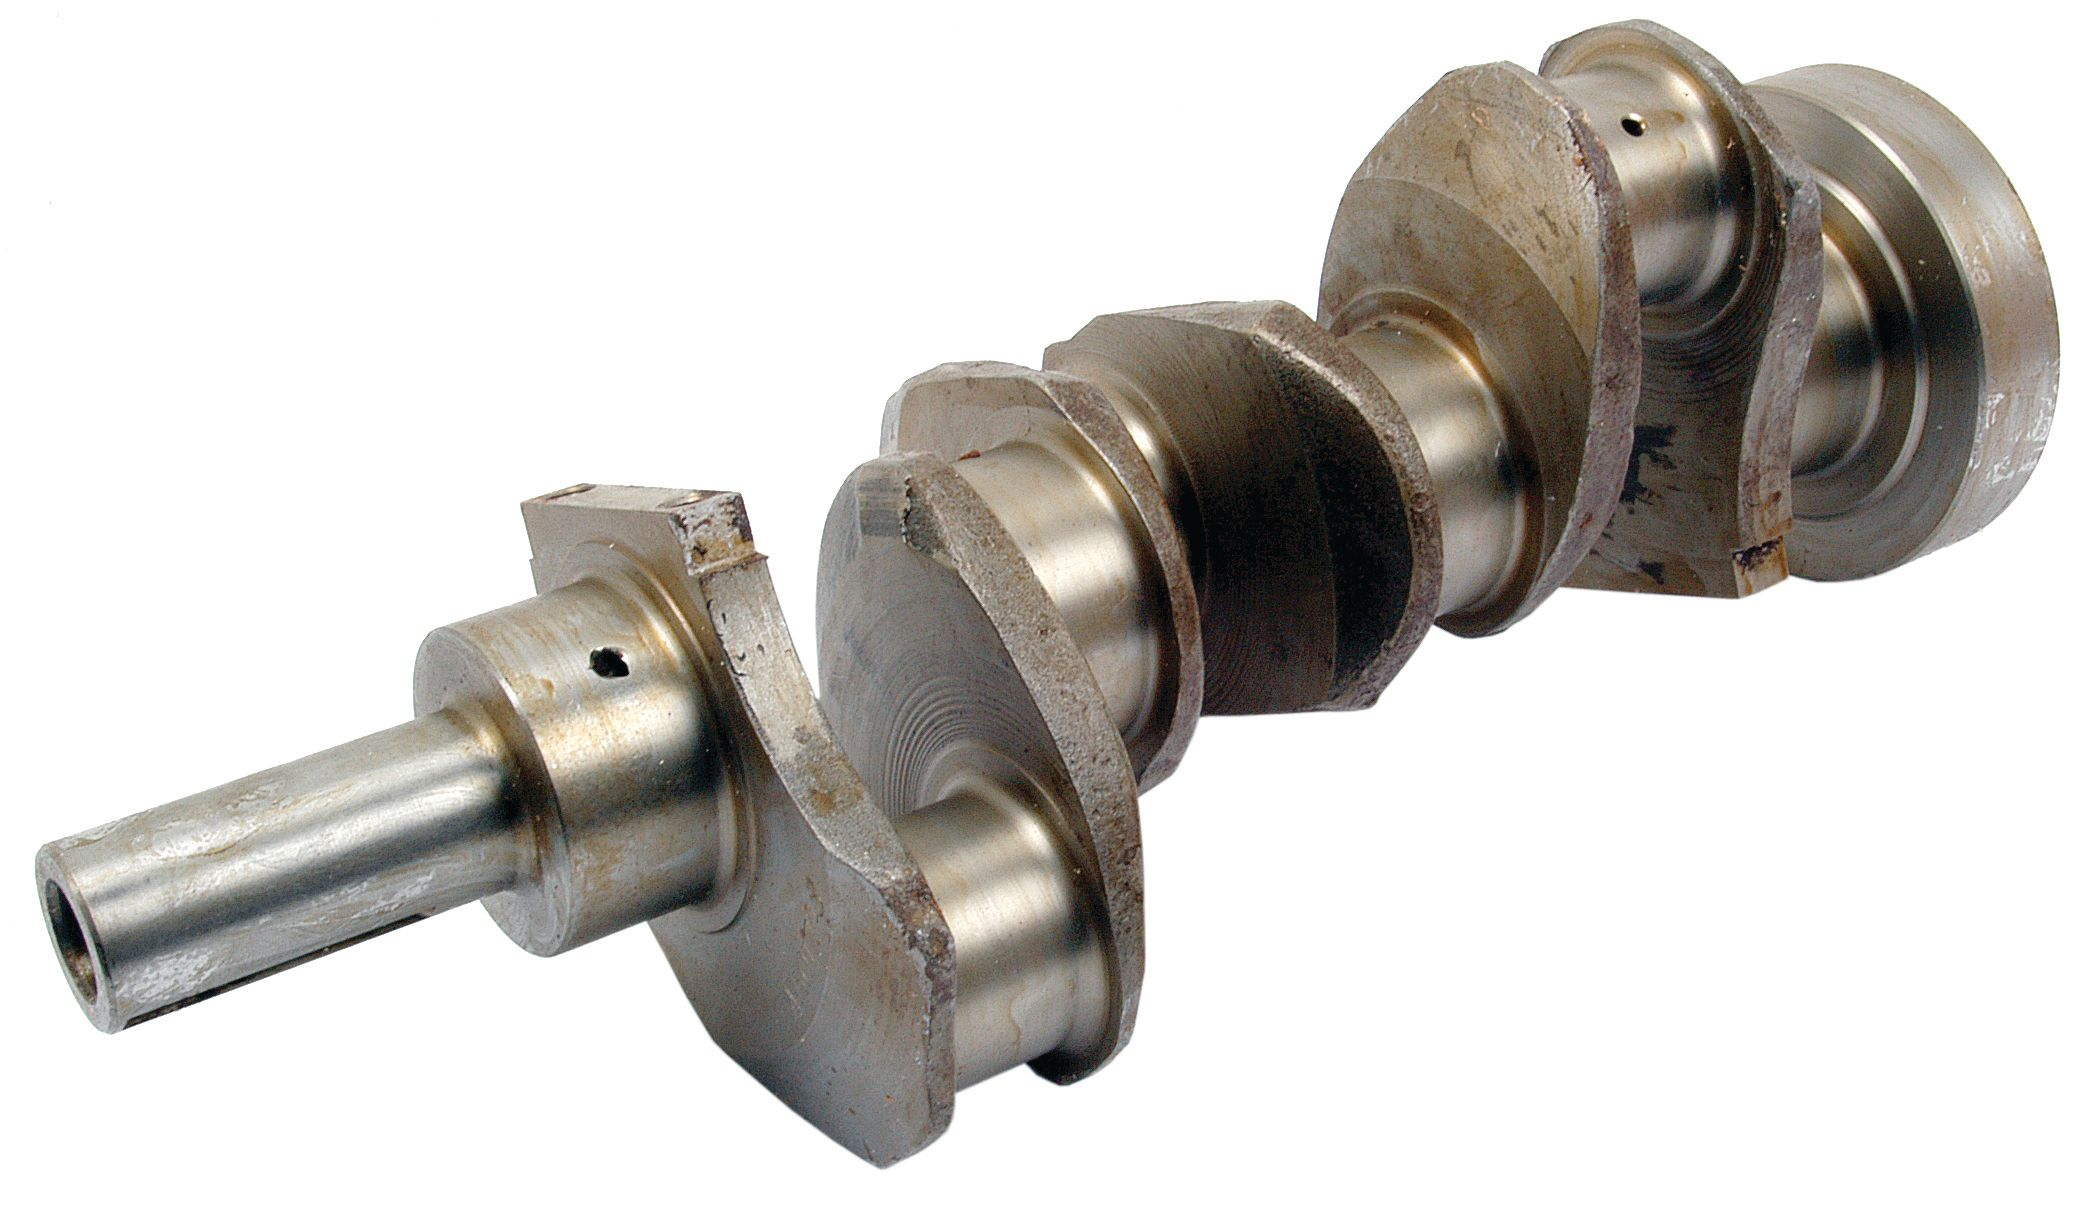 LEYLAND CRANKSHAFT-3.152 LIP C/W BRGS 40313